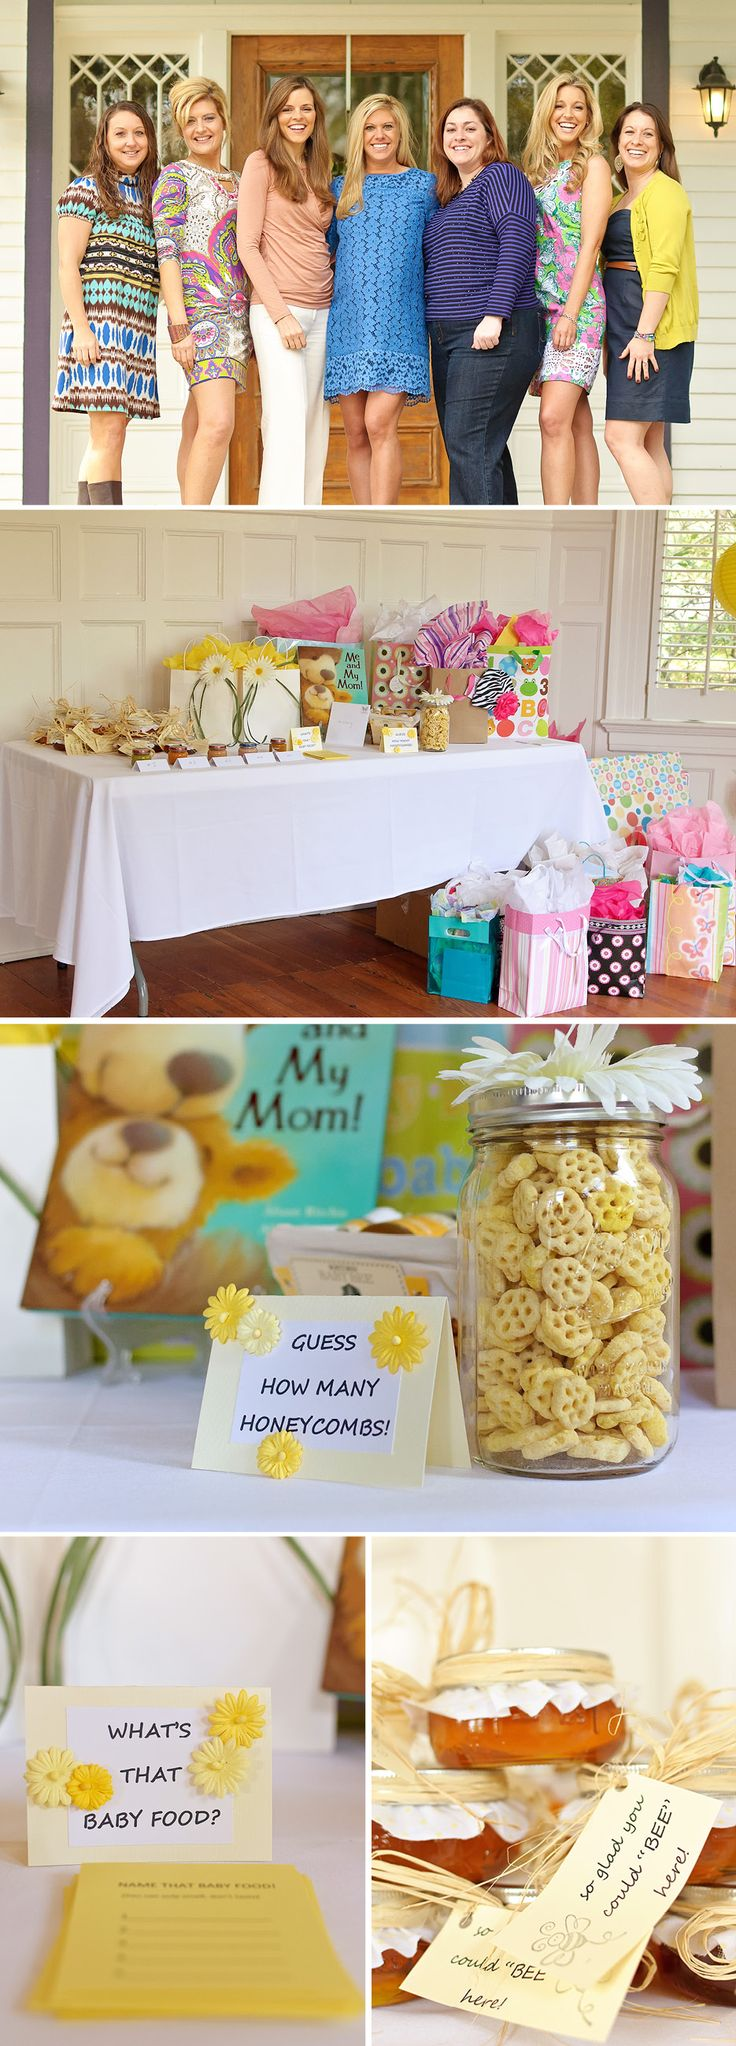 Bumblebee Themed Baby Shower - OCCASIONS